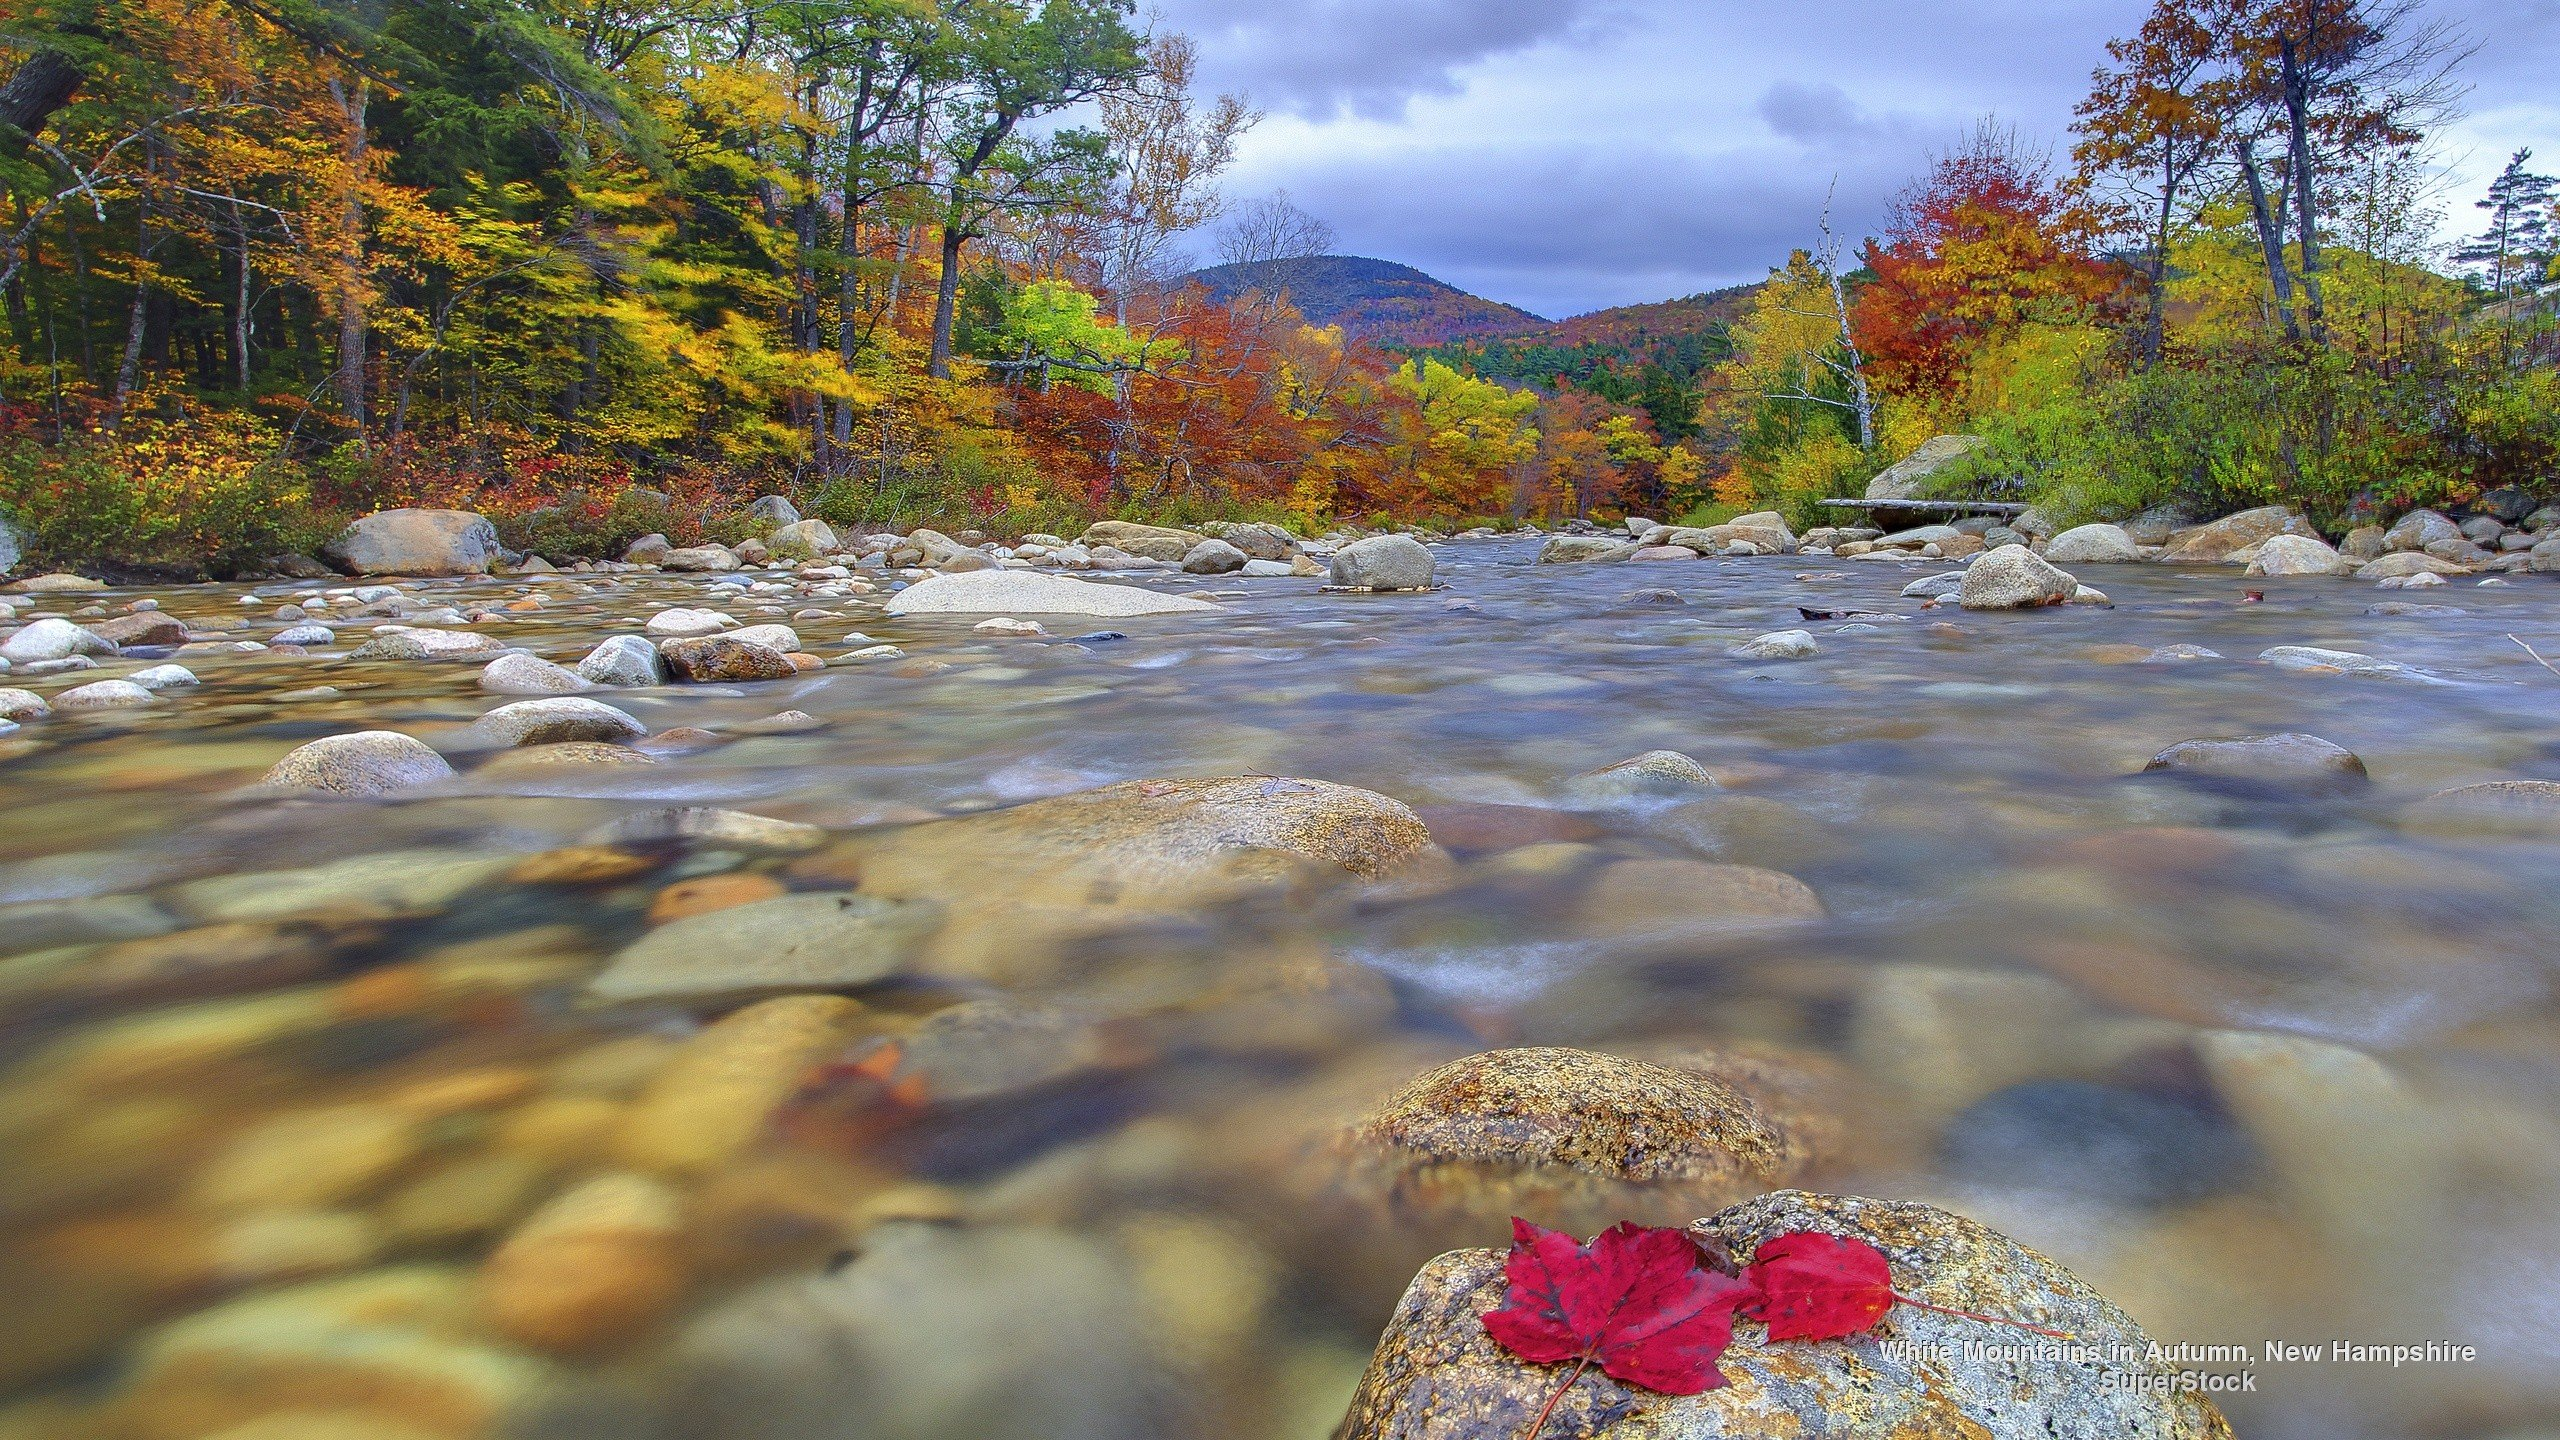 New Hampshire Wallpapers 2560x1440 px 2B12E56 WallpapersExpertcom 2560x1440